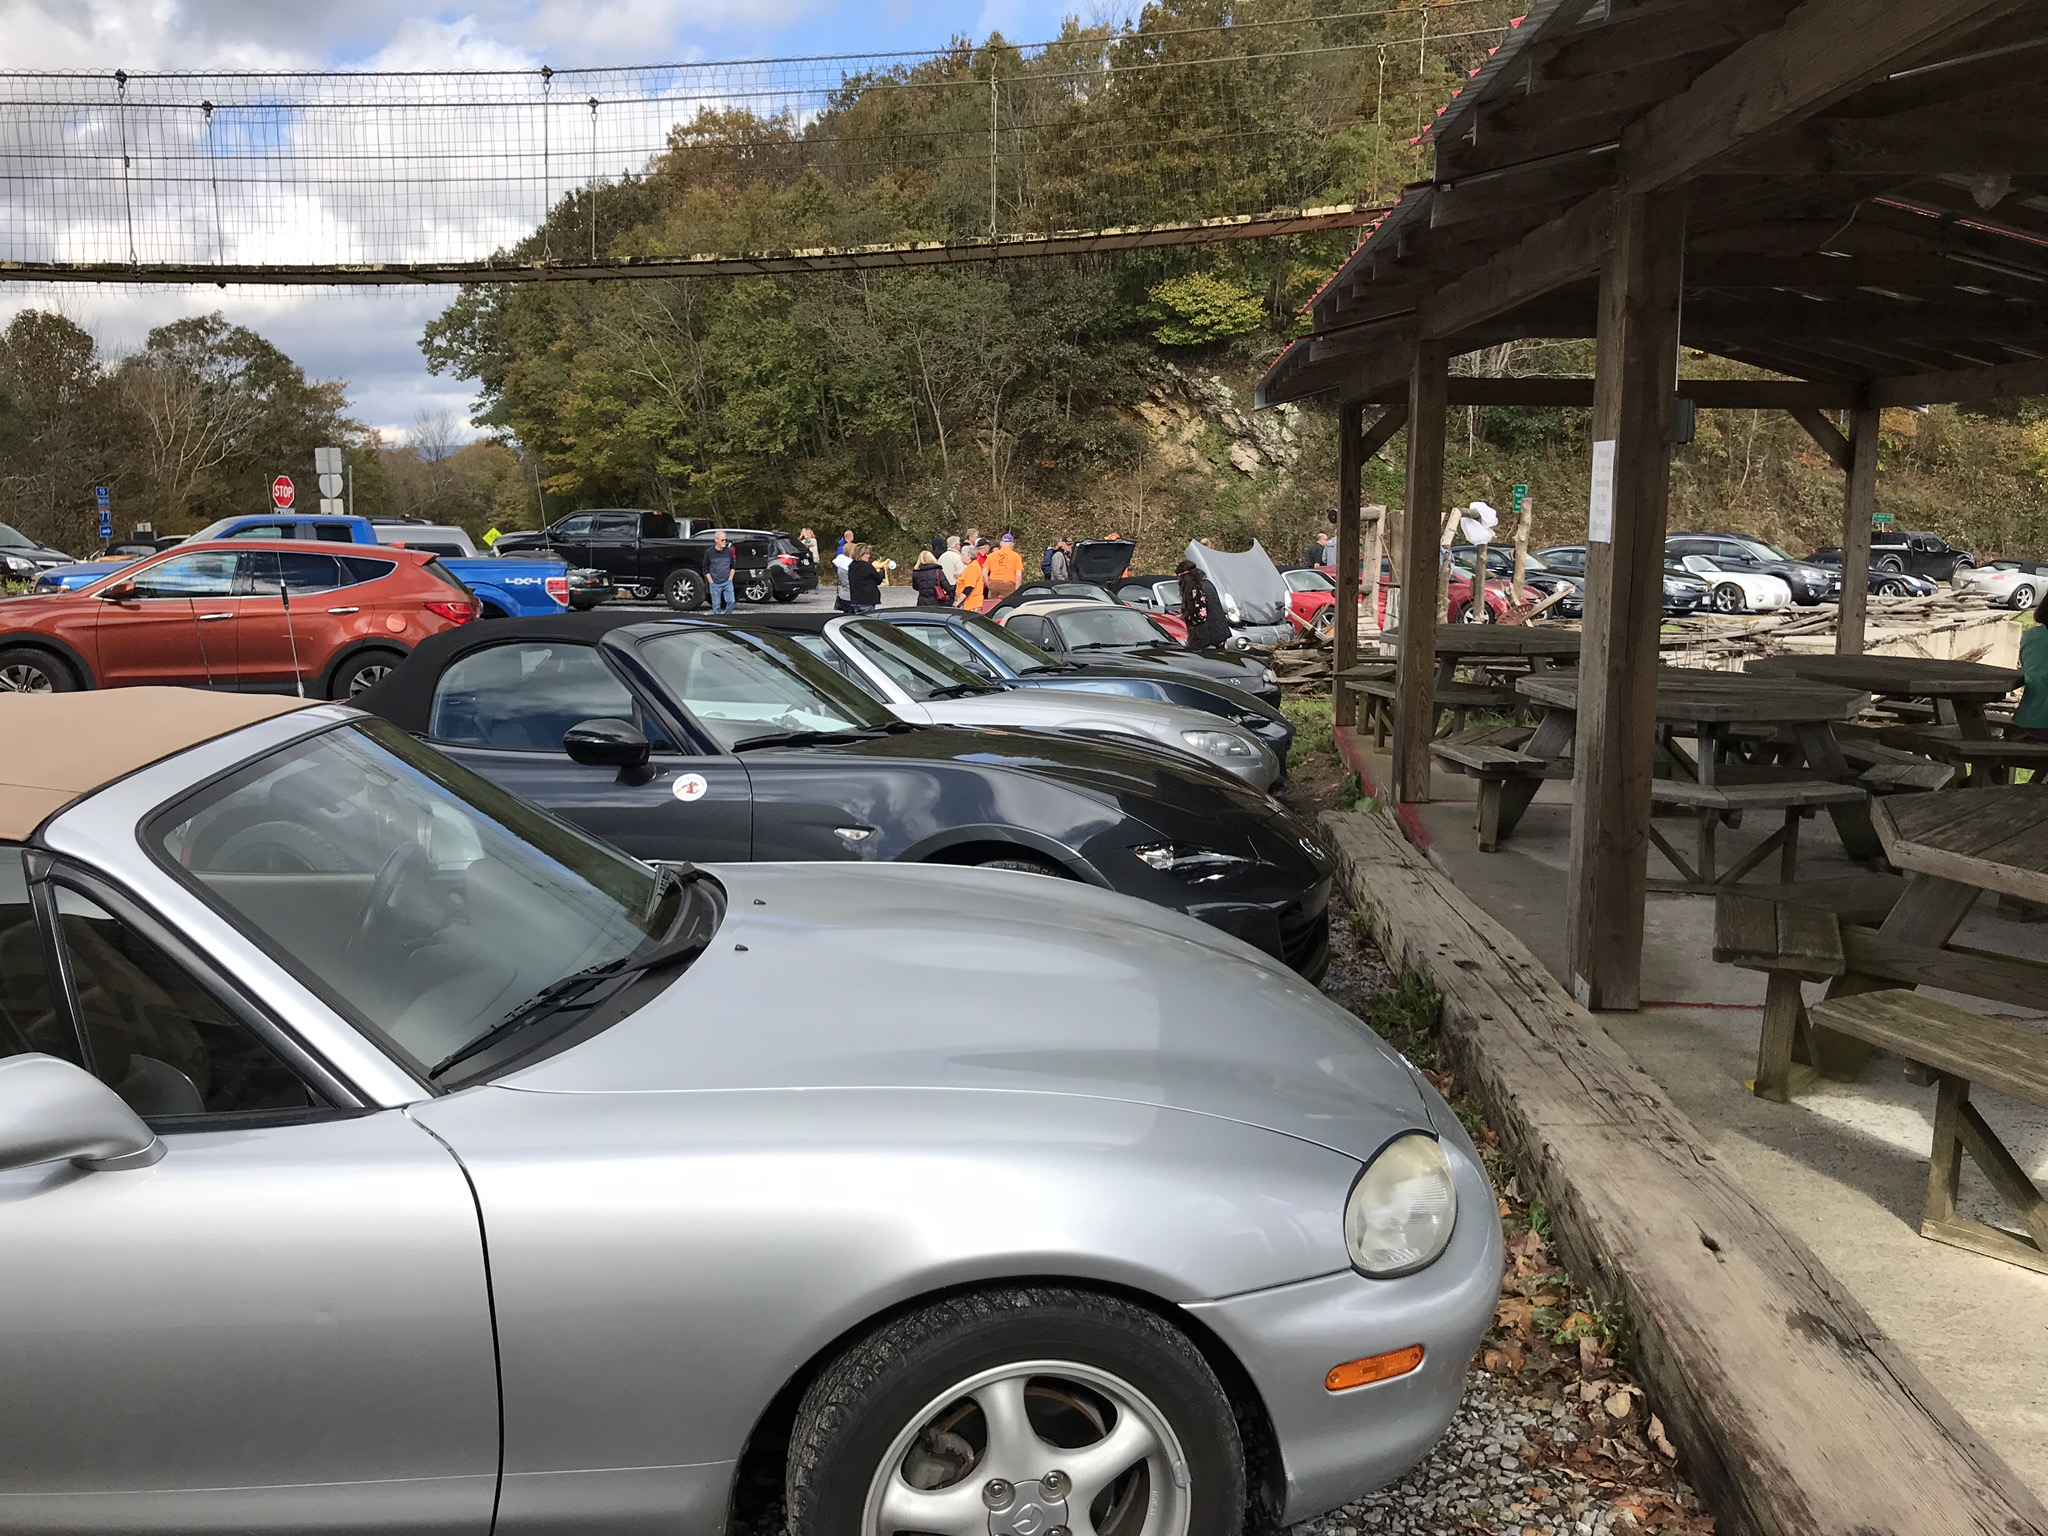 Saturday afternoon we drove to Big Walker Lookout. Our Miatas plus another car club were there.